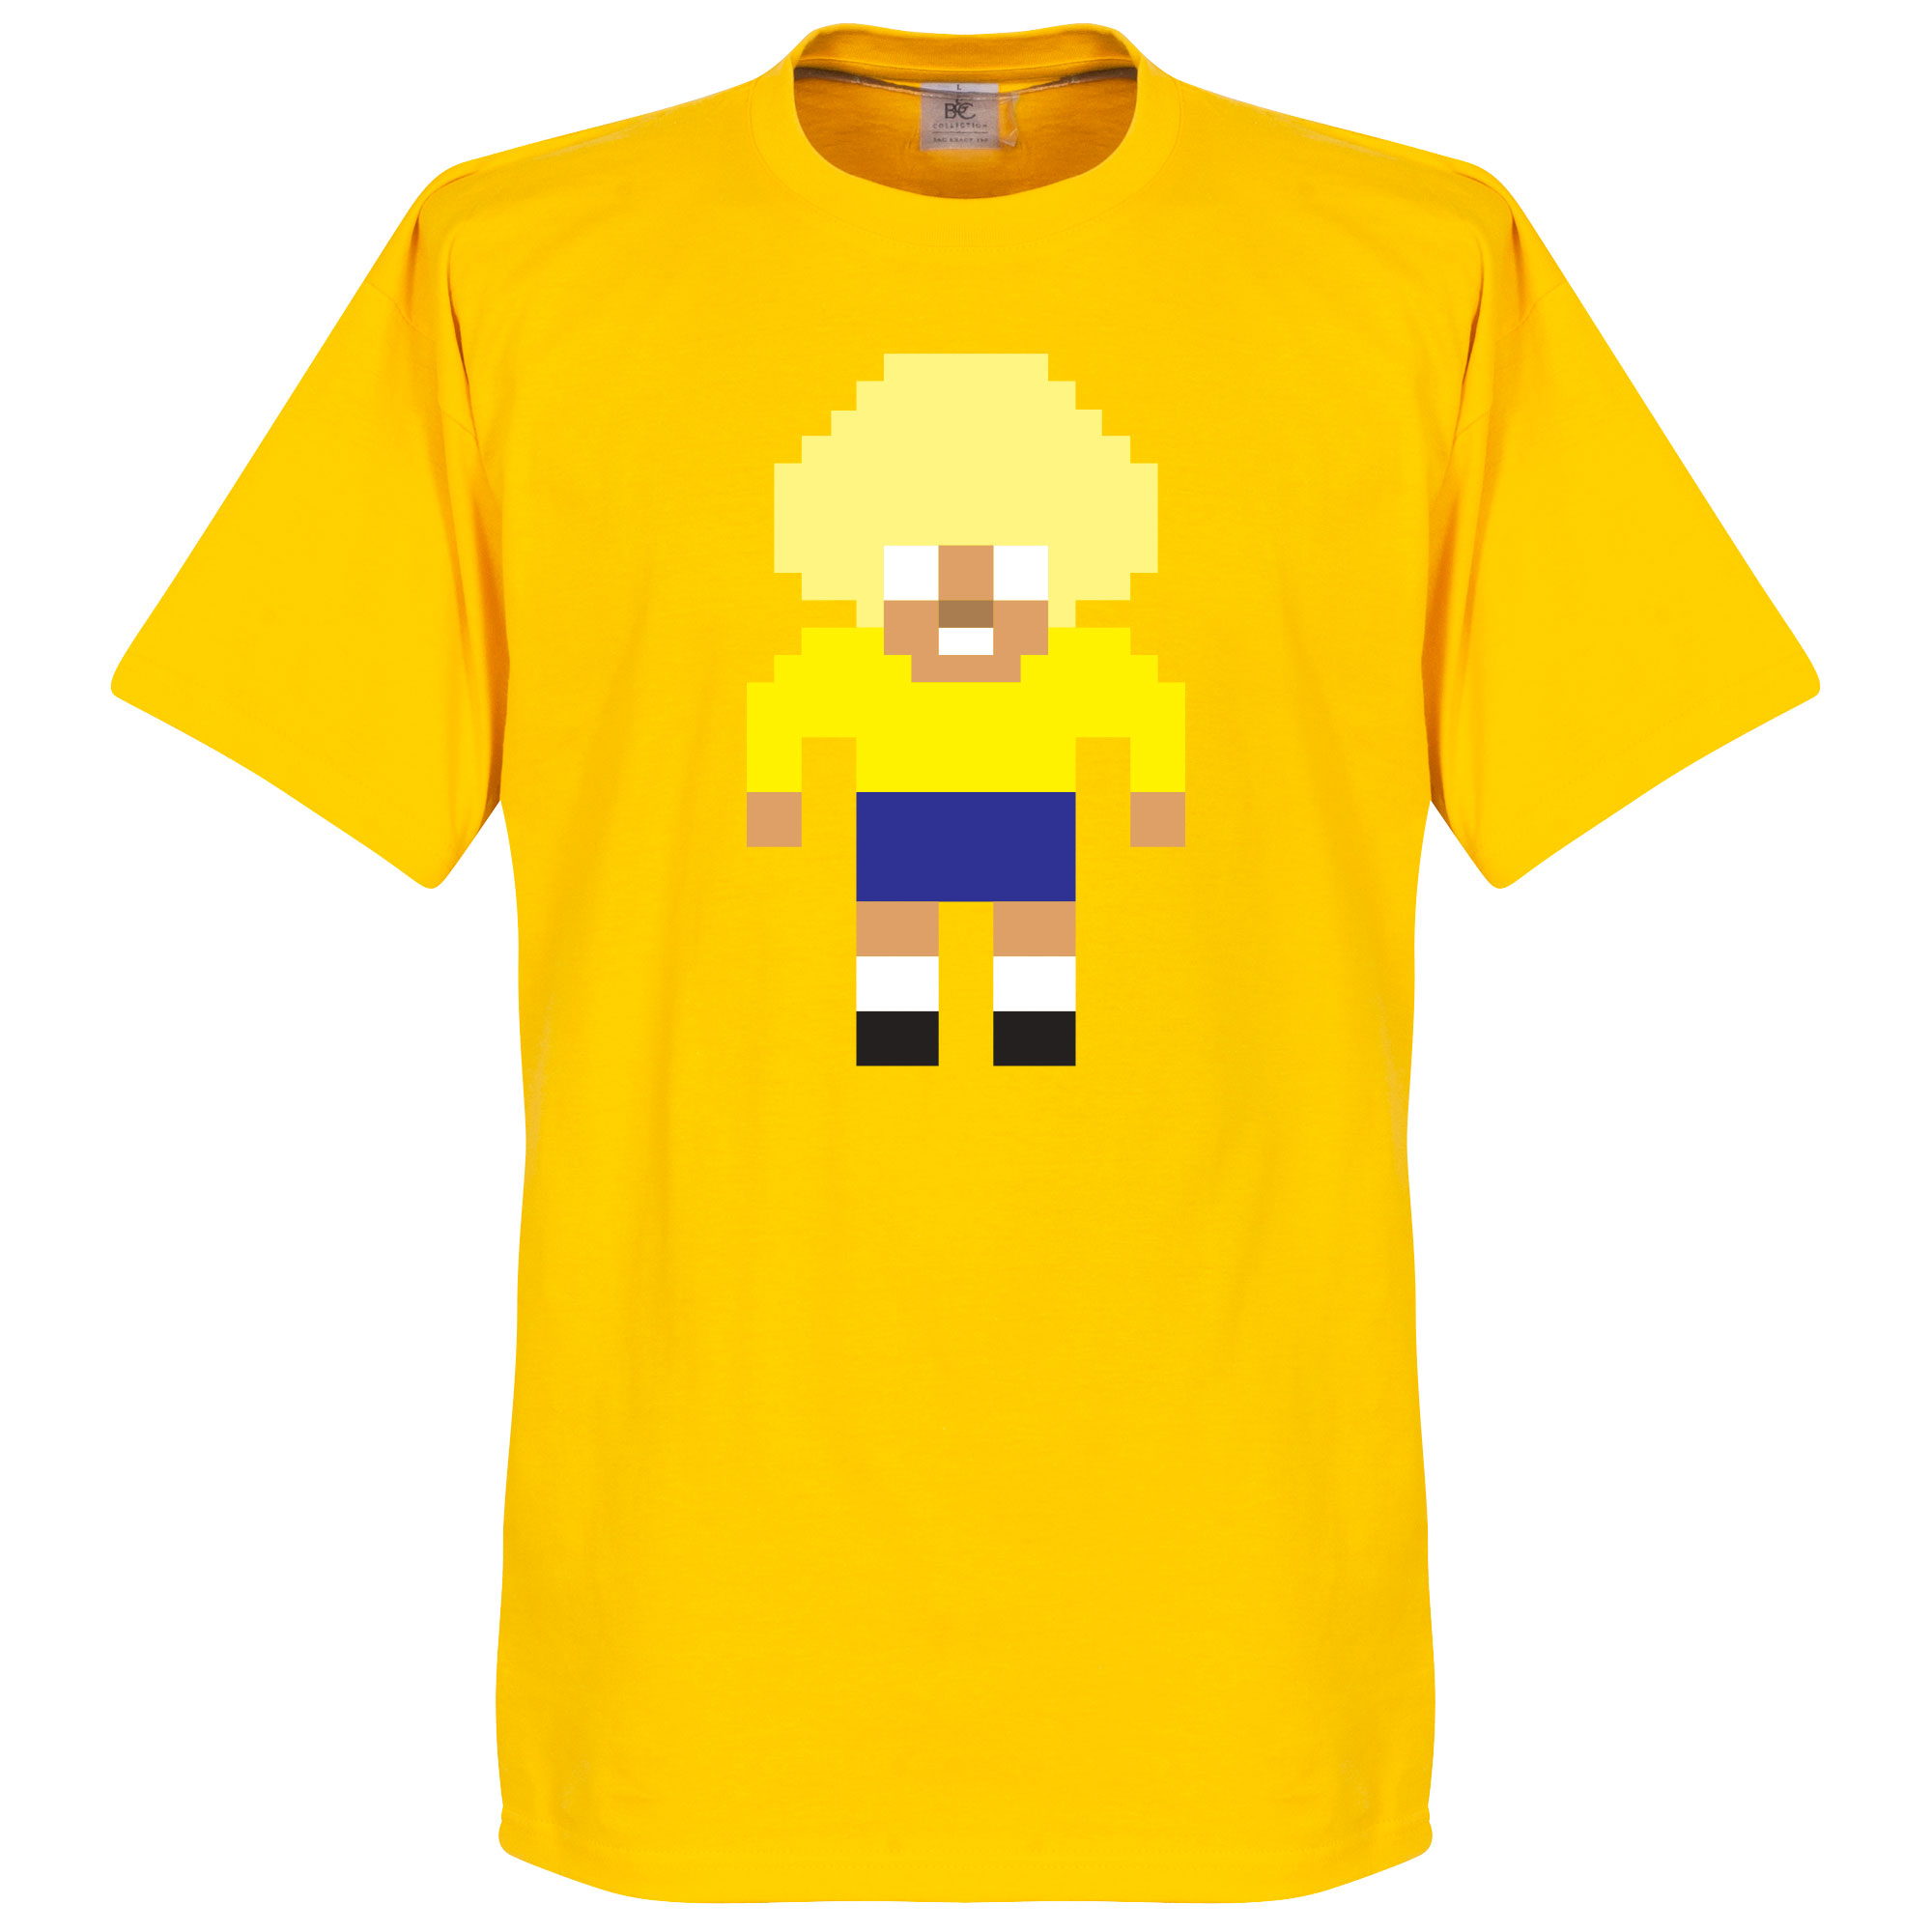 Valderrama Pixel Players Tee - Yellow - S